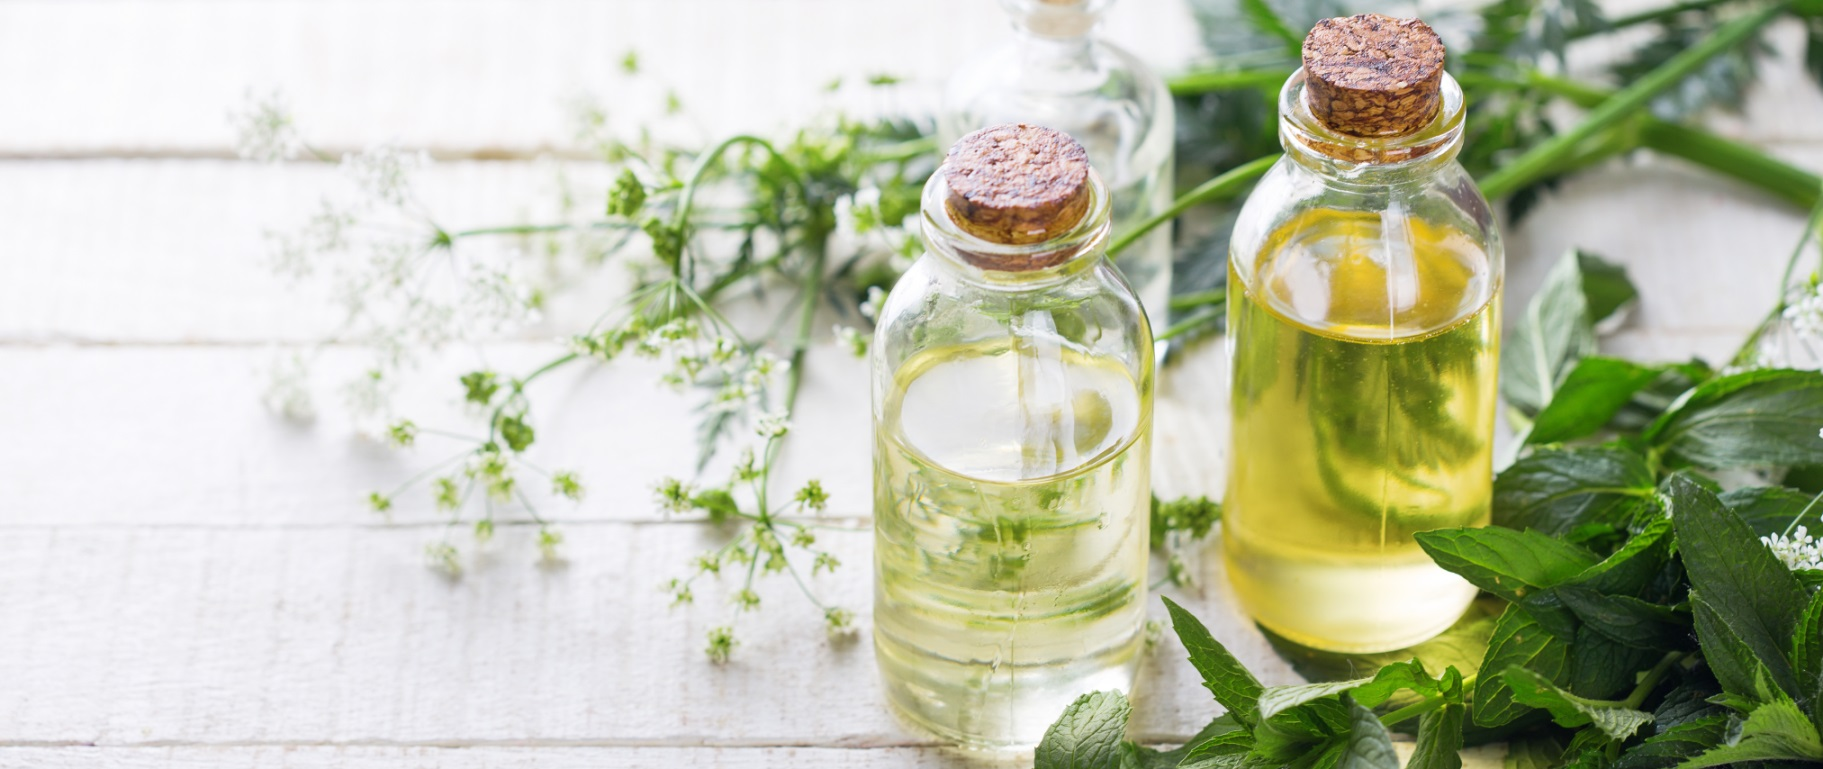 Making Health Promoting Spa Products with Therapeutic Oils